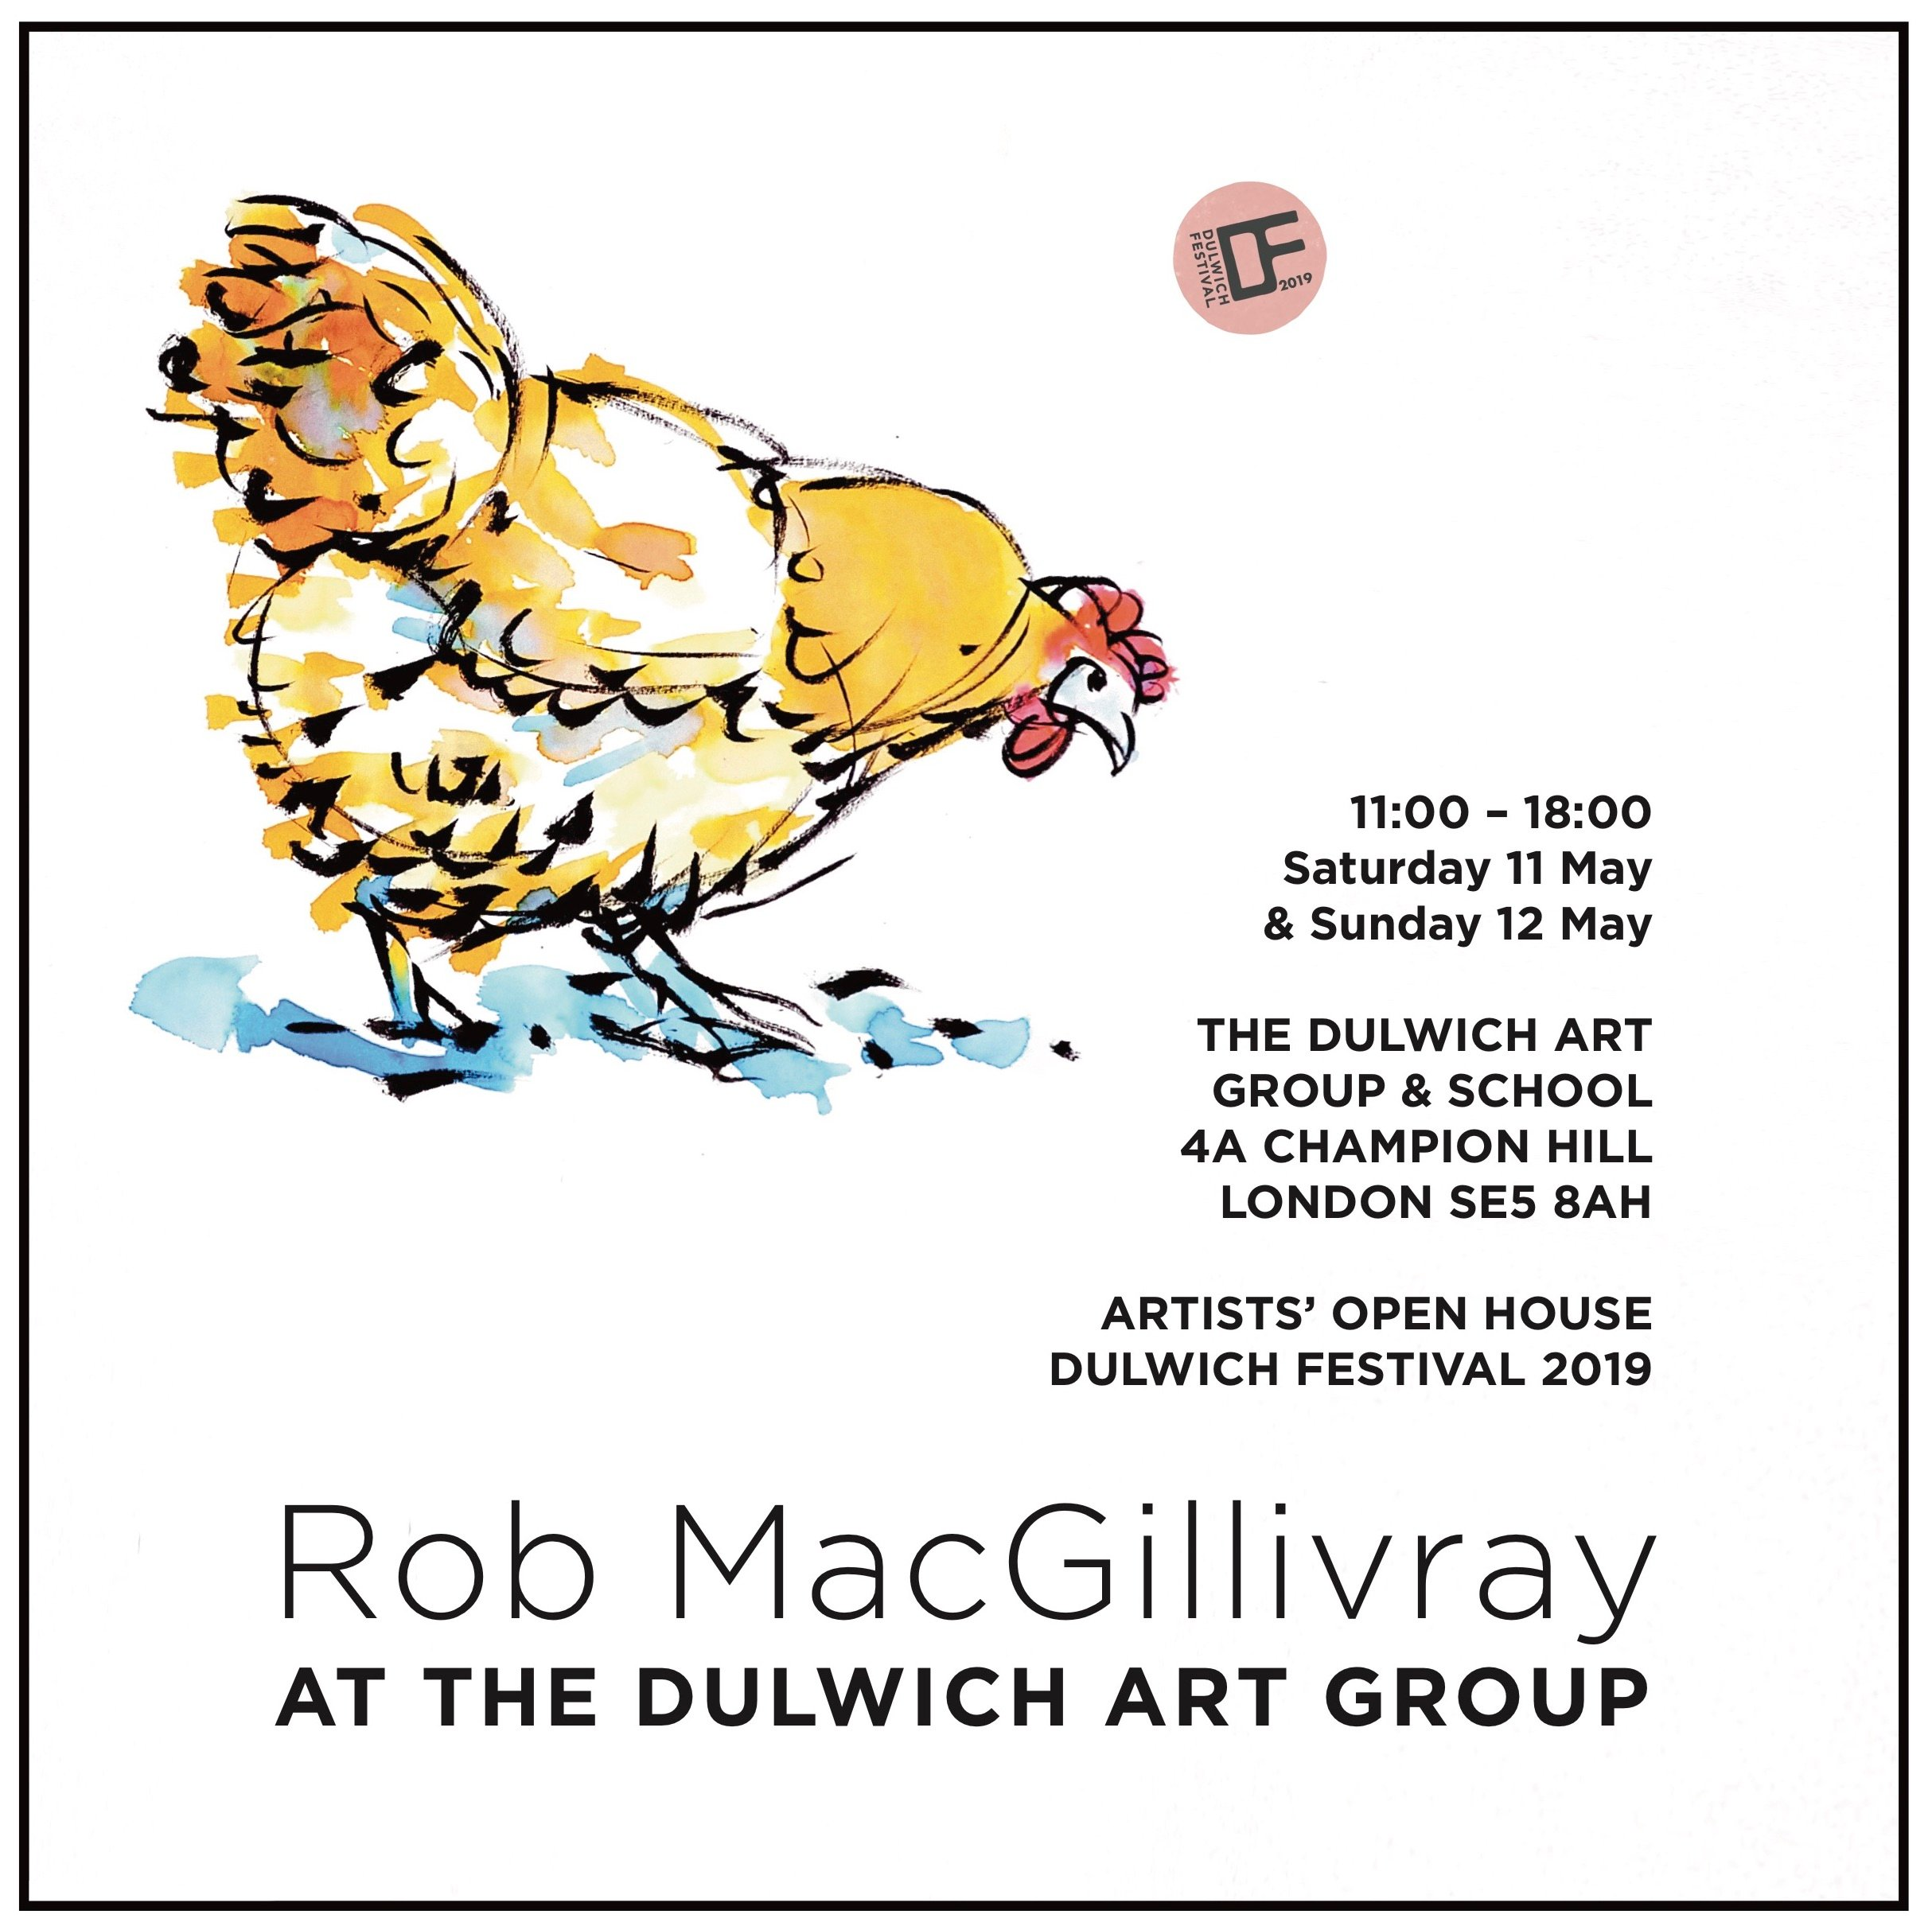 Dulwich Art Group